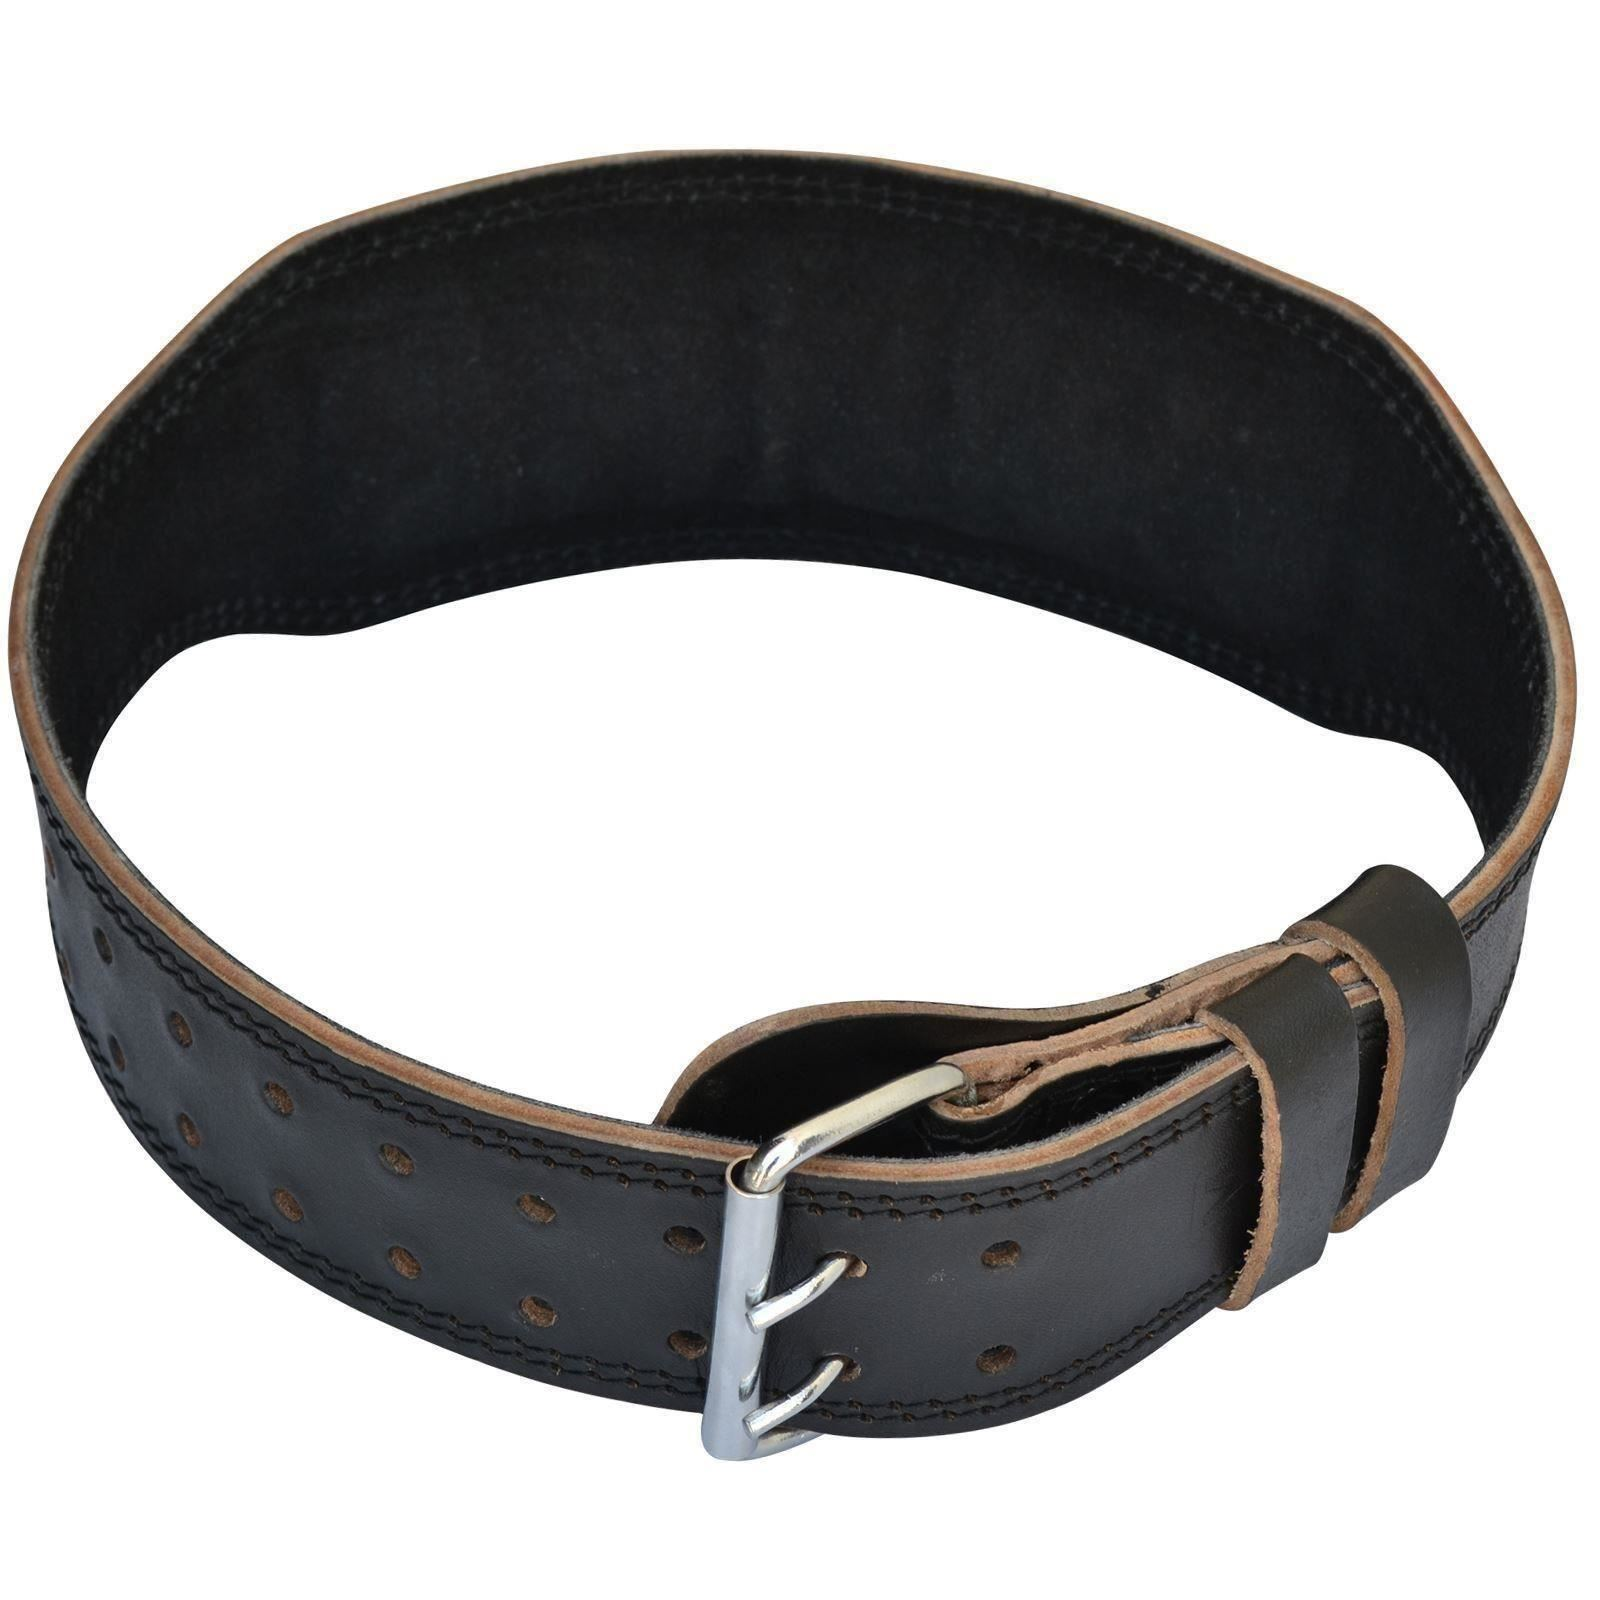 Aqf Weight Lifting Leather Belt 4 Quot Cowhide Back Support